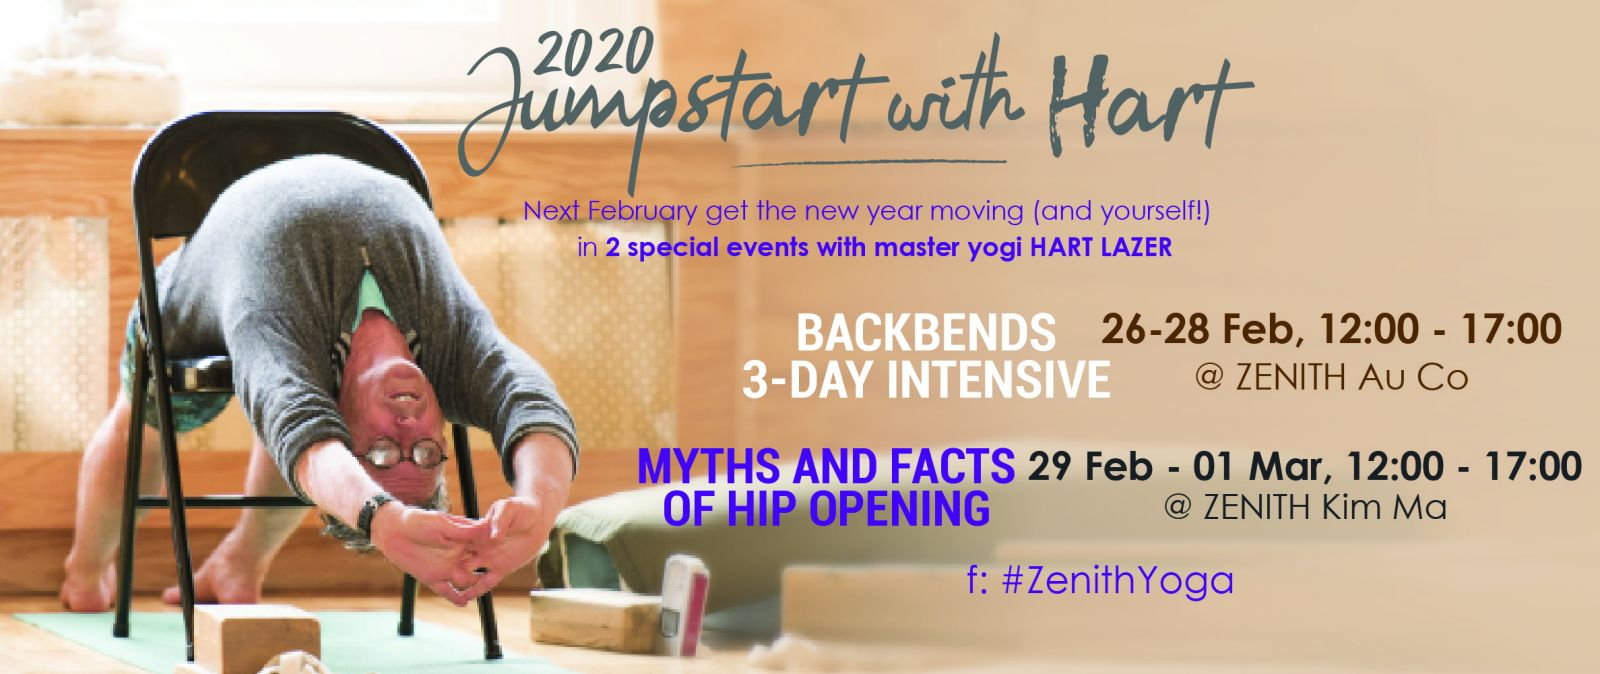 HART LAZER JAN 2020 COURSE AND WORKSHOP